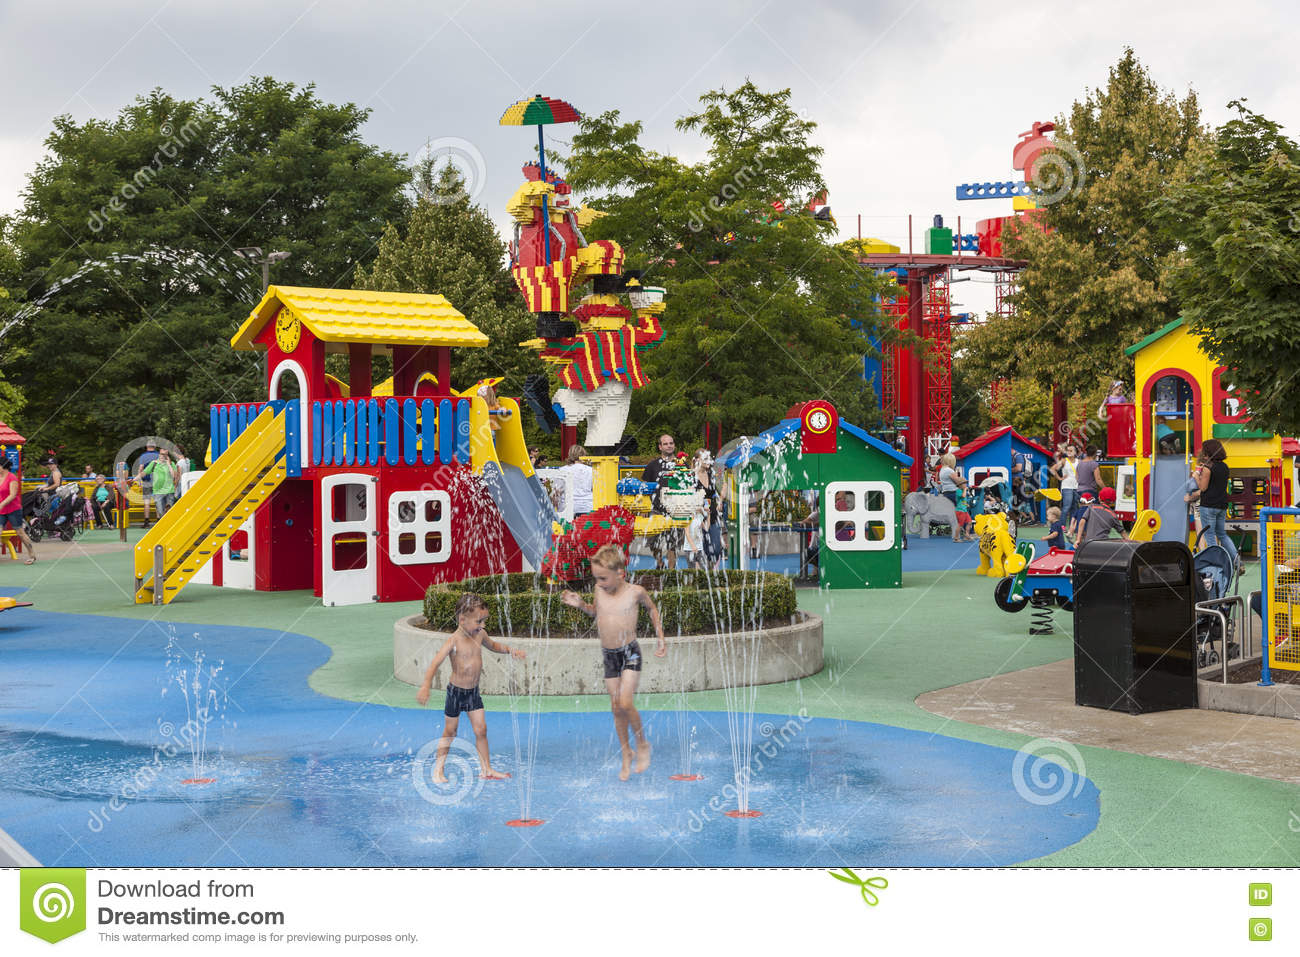 brunnen beim legoland deutschland redaktionelles stockbild bild von aktivit t kinder 76749029. Black Bedroom Furniture Sets. Home Design Ideas